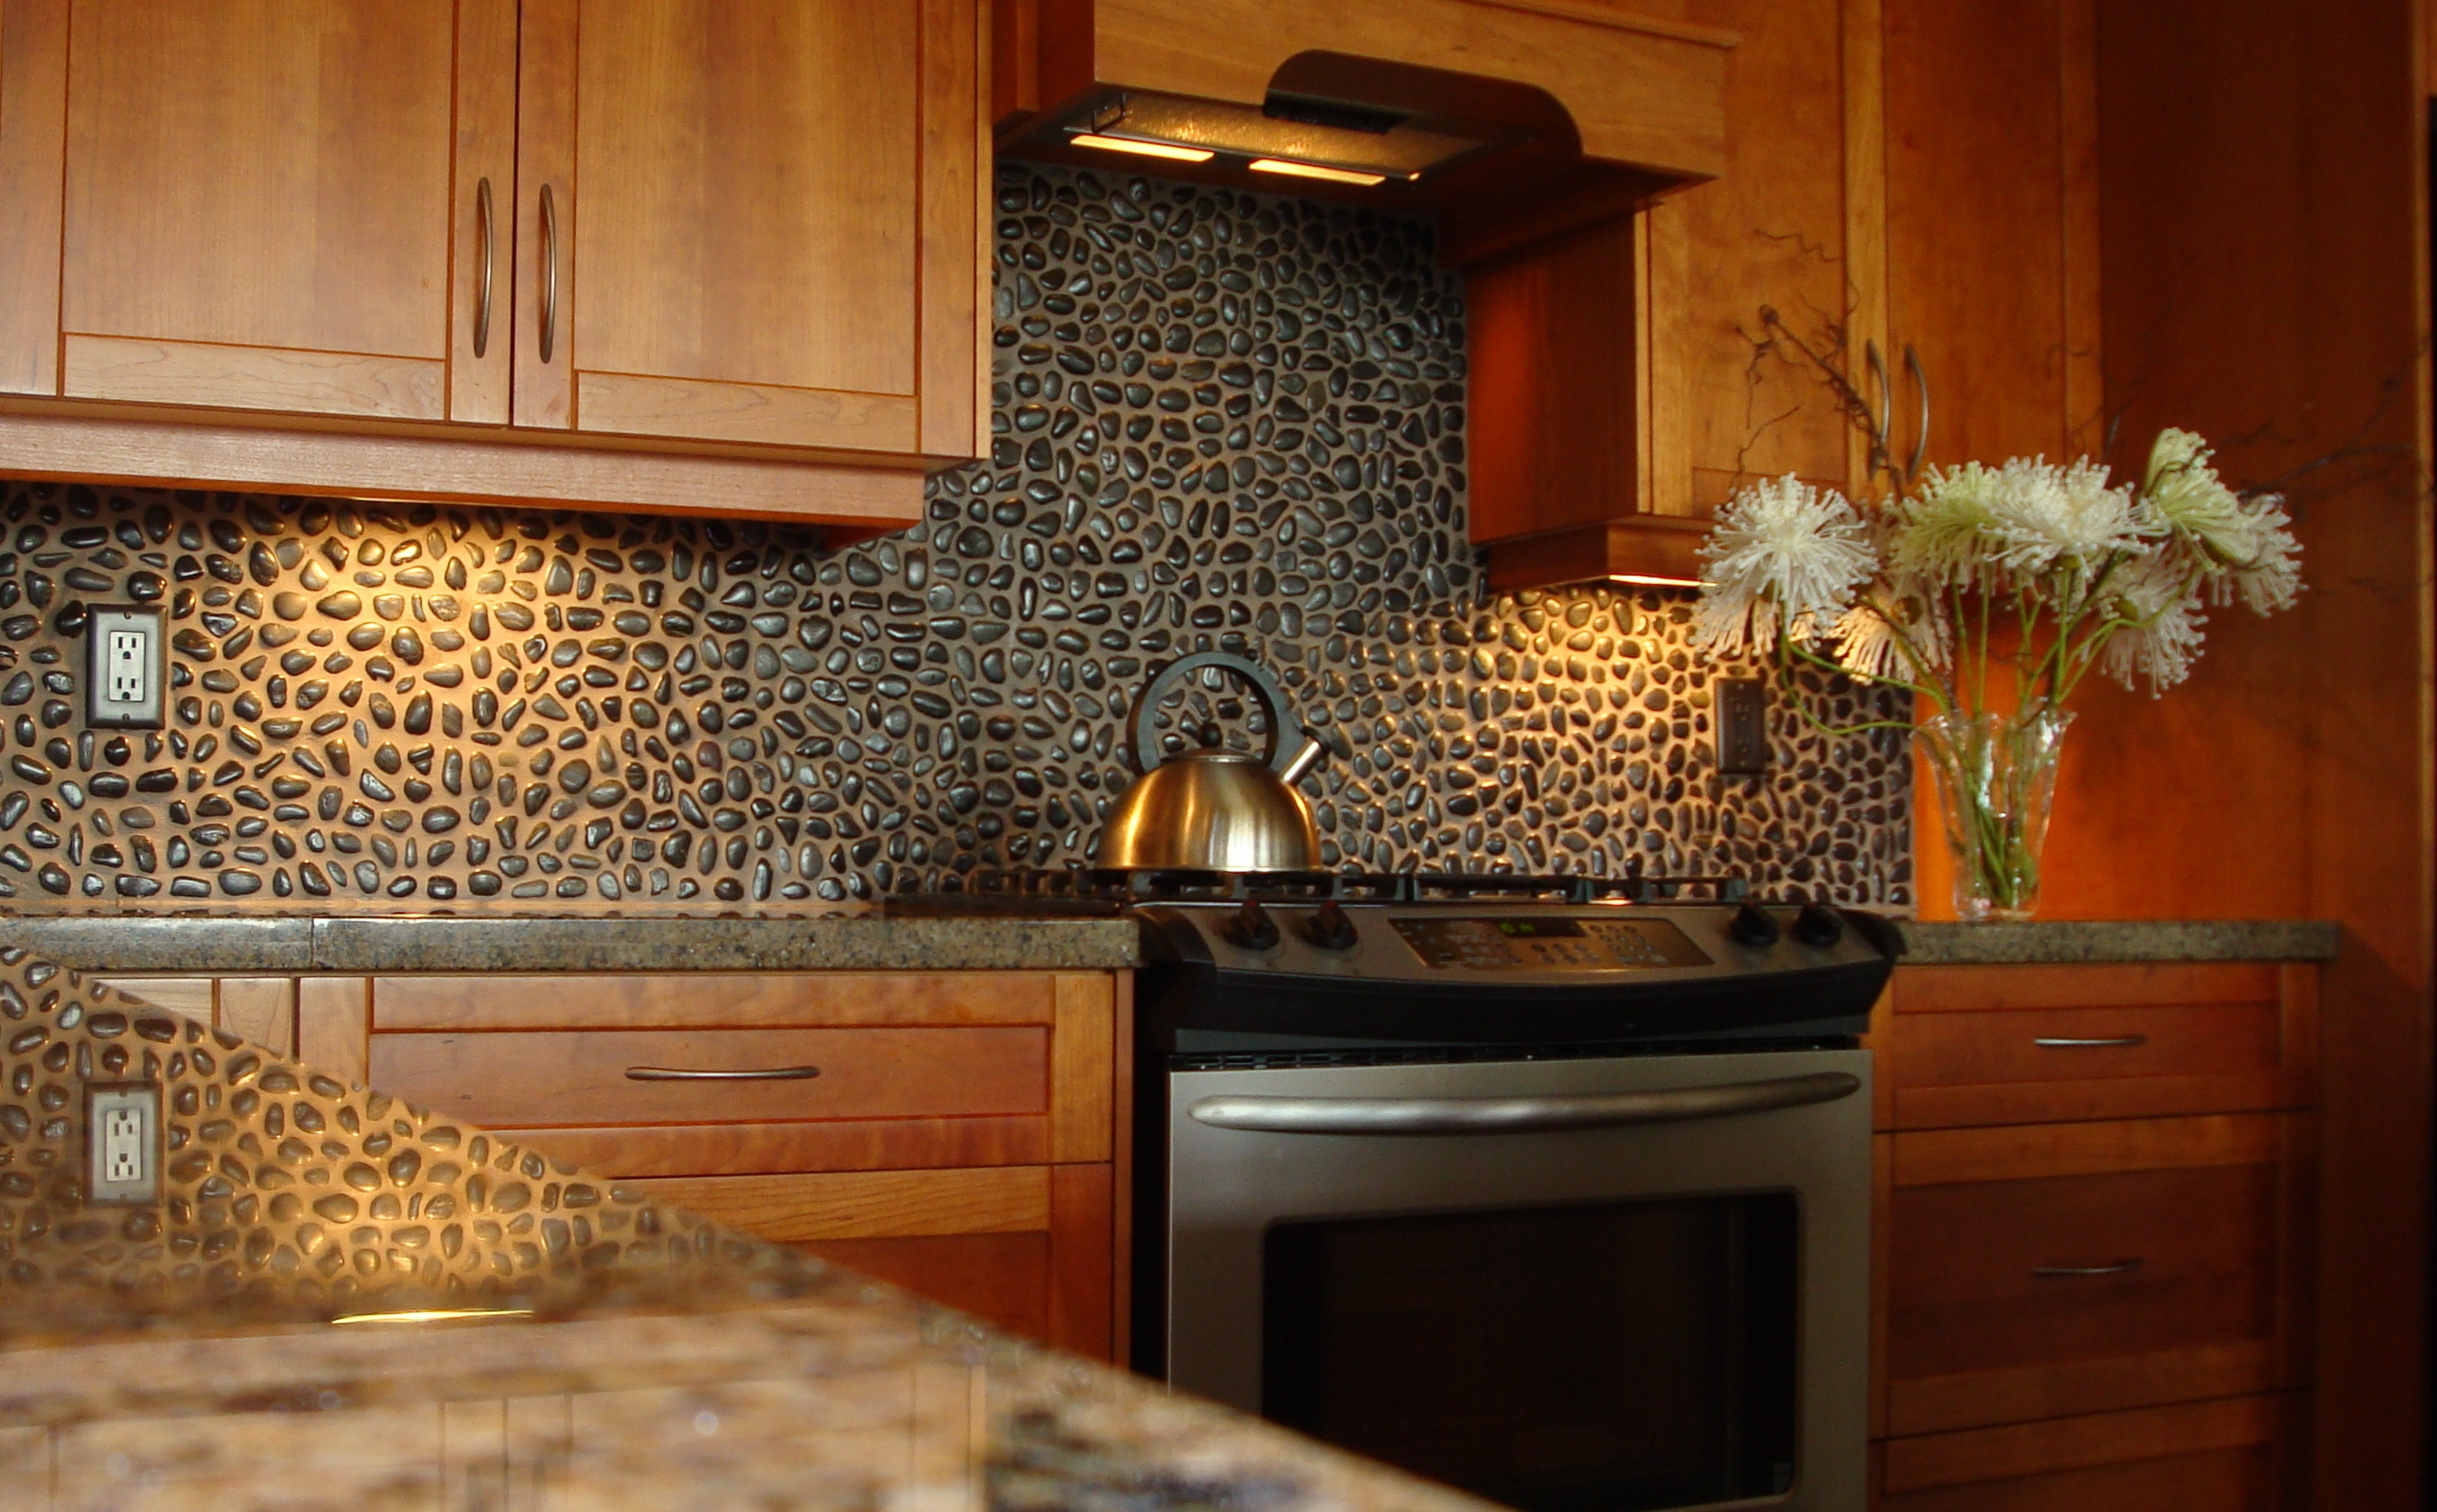 Tile Kitchen Backsplash Tiles Ideas Tile A Backsplash Backsplashes 2688x1668